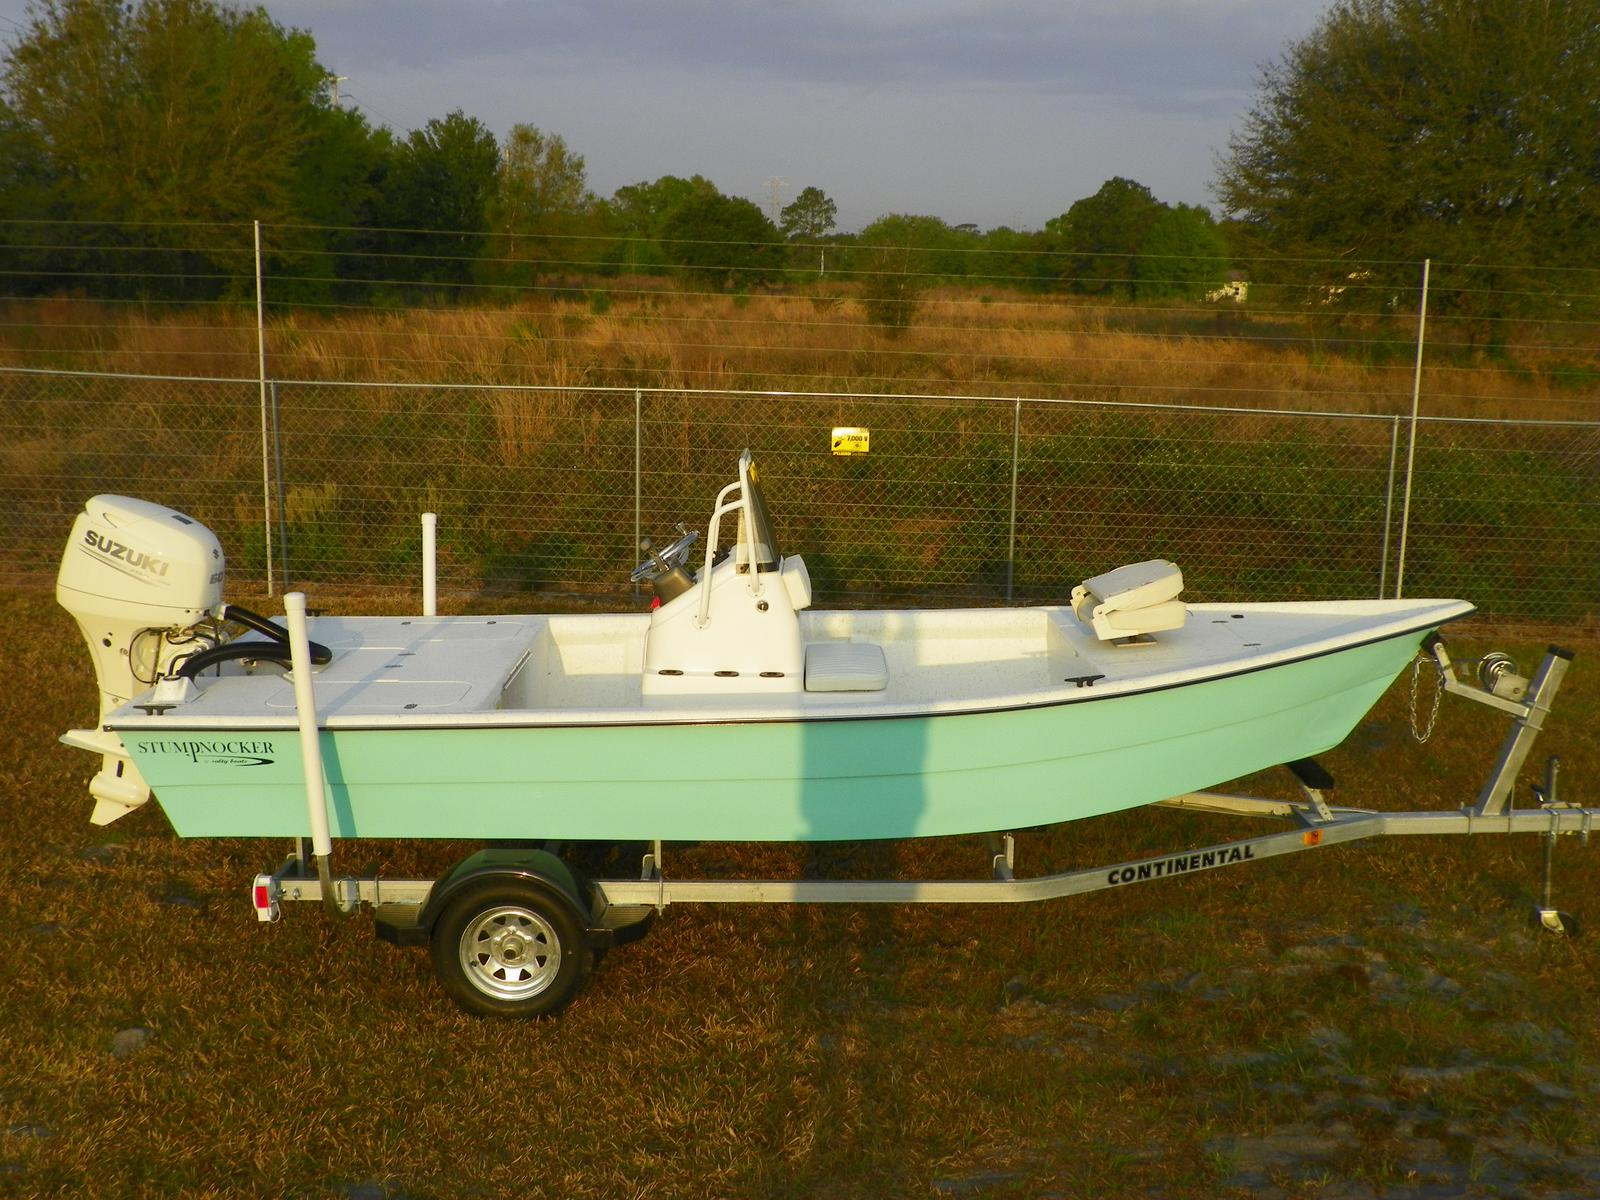 Stumpnocker 174 Sport Skiff CC